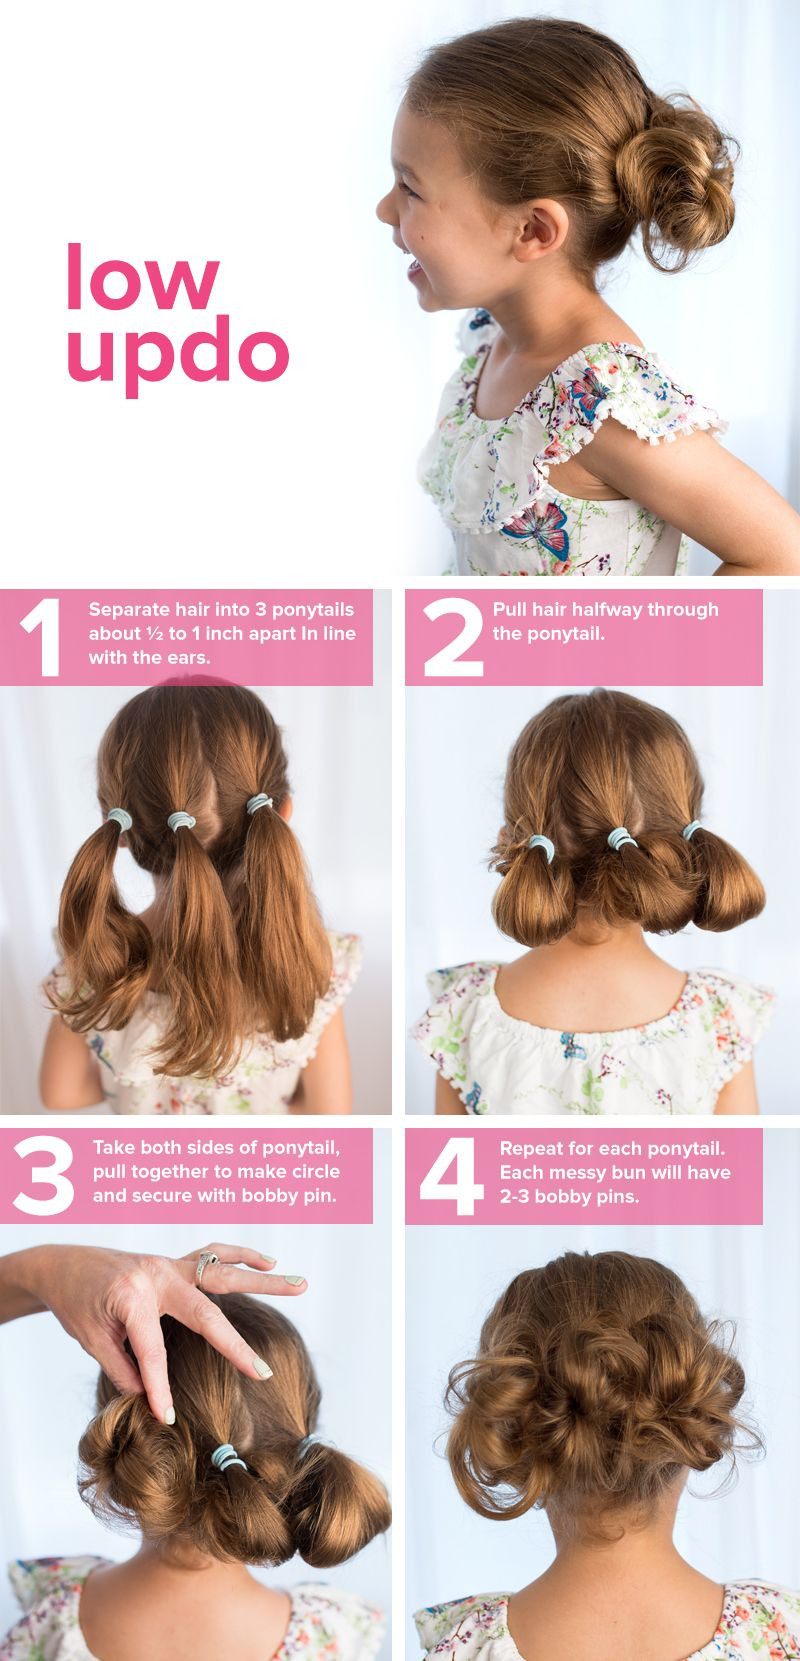 Best ideas about Simple Hairstyle For Kids . Save or Pin 5 fast easy cute hairstyles for girls Now.